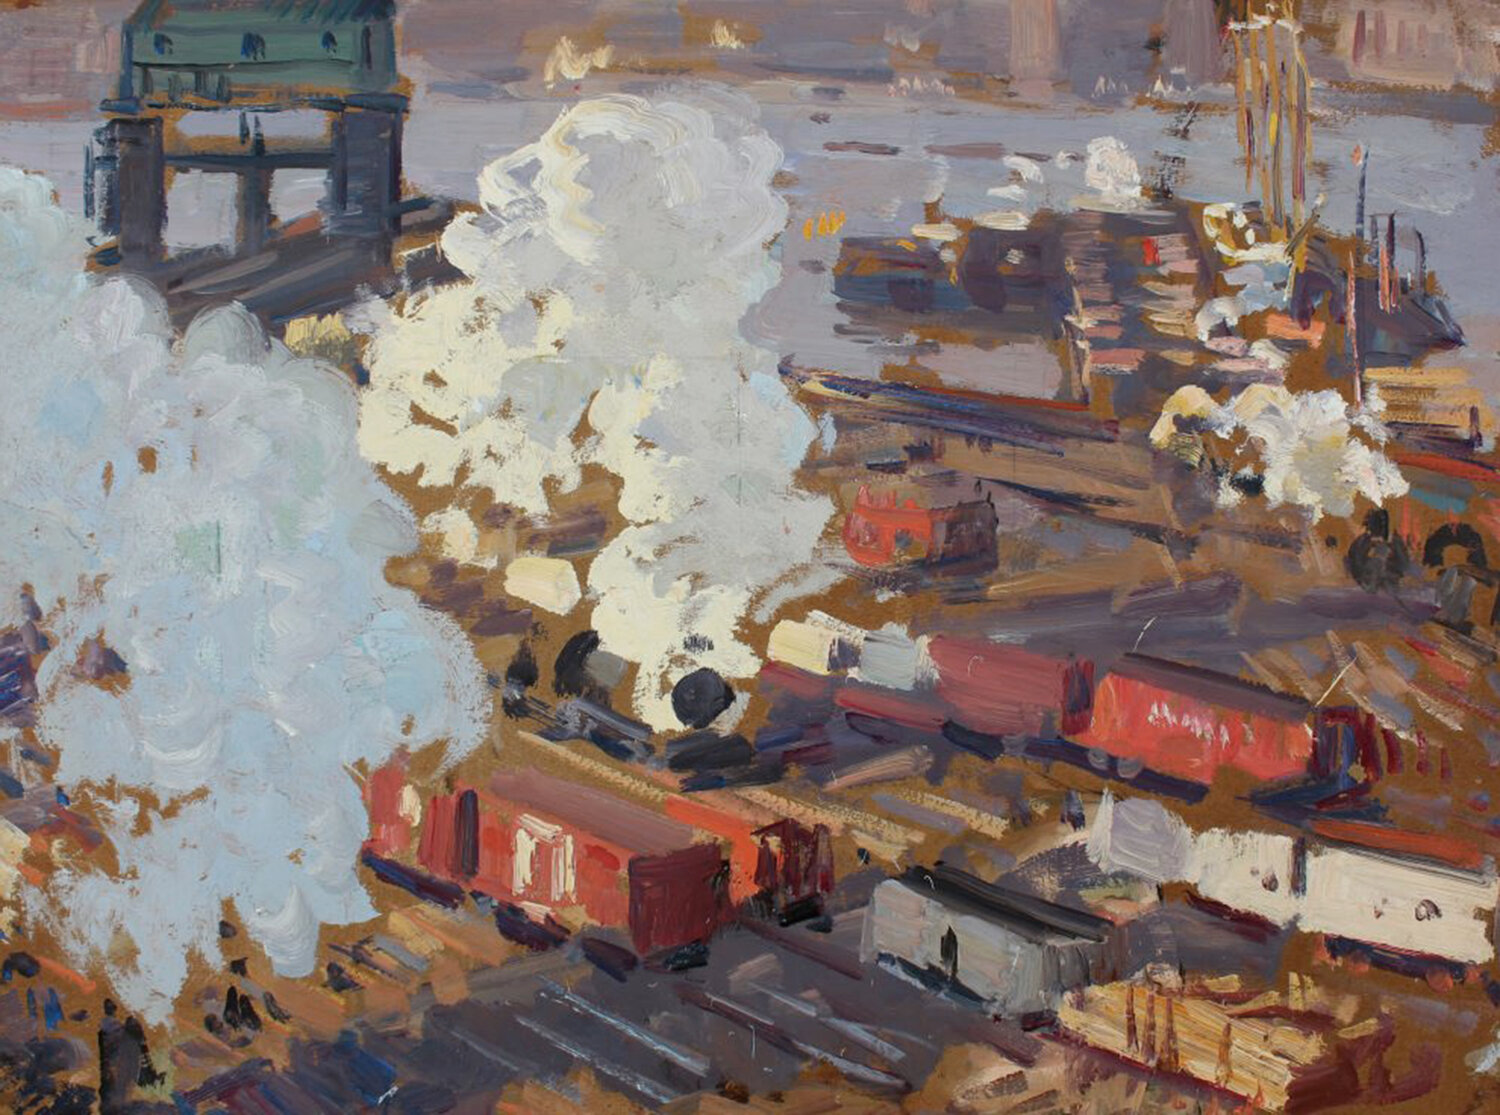 Image of railway yards with steam in New York City with red, blue, browns, and grays by Gifford Beal